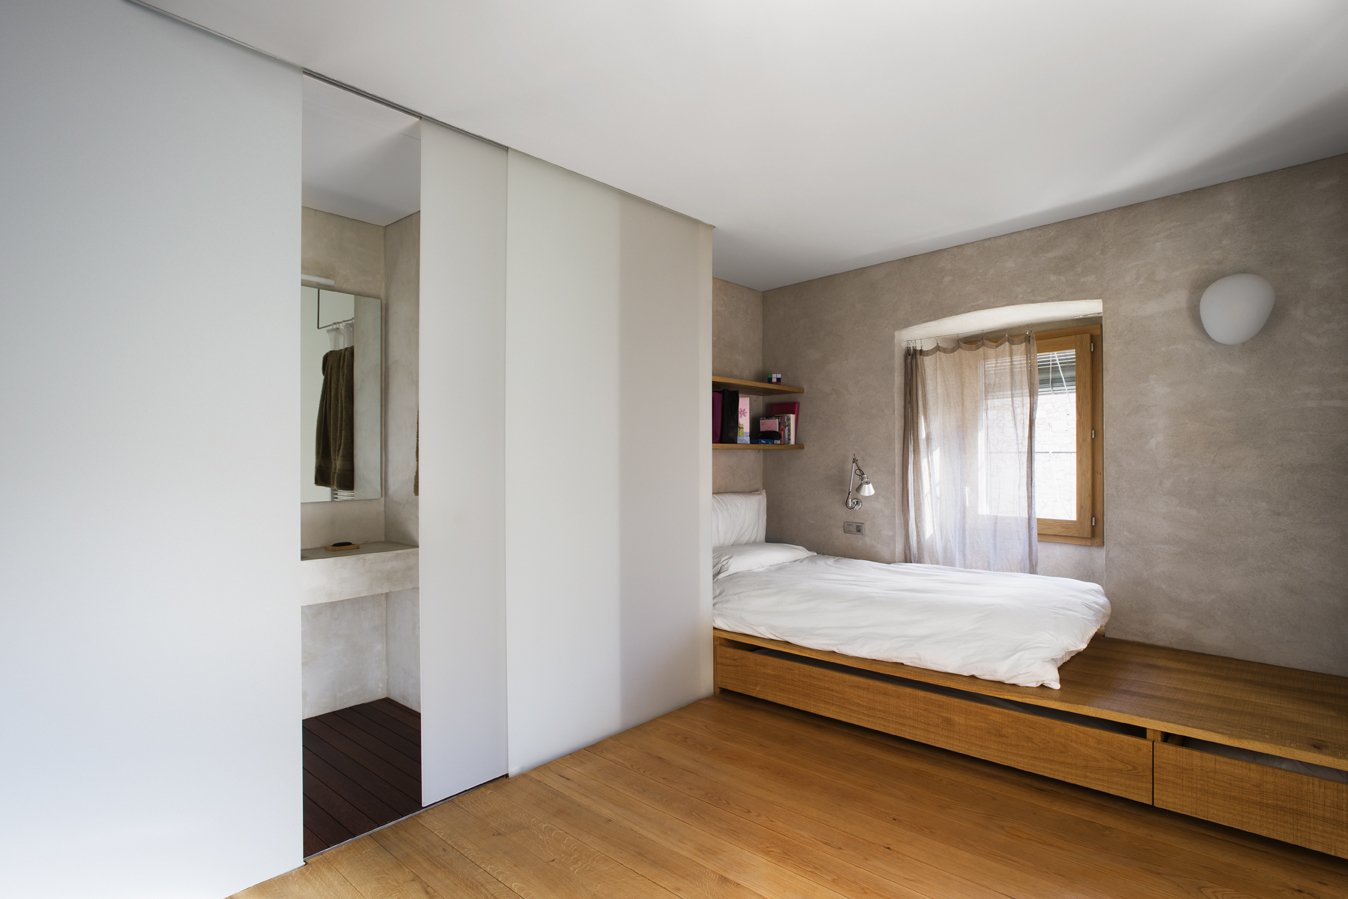 Bedroom, Wall Lighting, Storage, Medium Hardwood Floor, Shelves, and Bed A warm and simple bedroom with an ensuite bathroom.  Photo 6 of 15 in A Spanish Architect Transforms a Medieval Townhouse Into a Stunning Rental